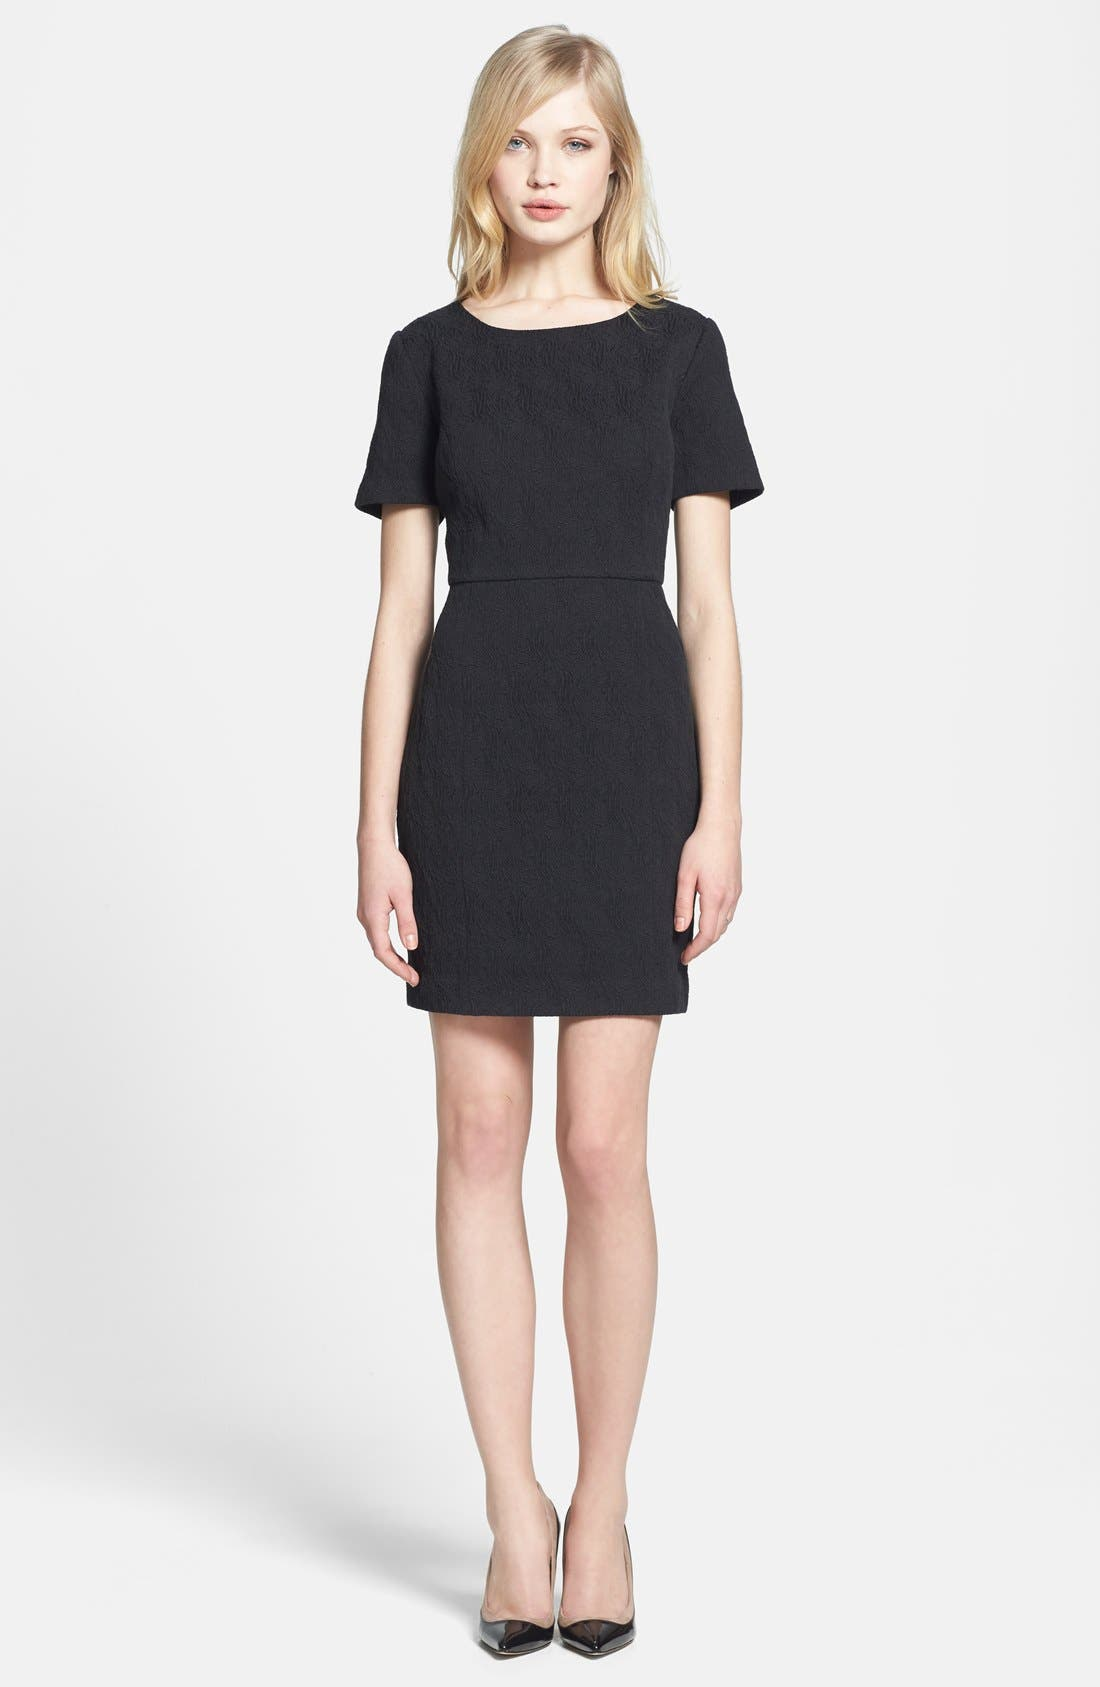 Main Image - Chelsea28 Back Cutout Jacquard Dress